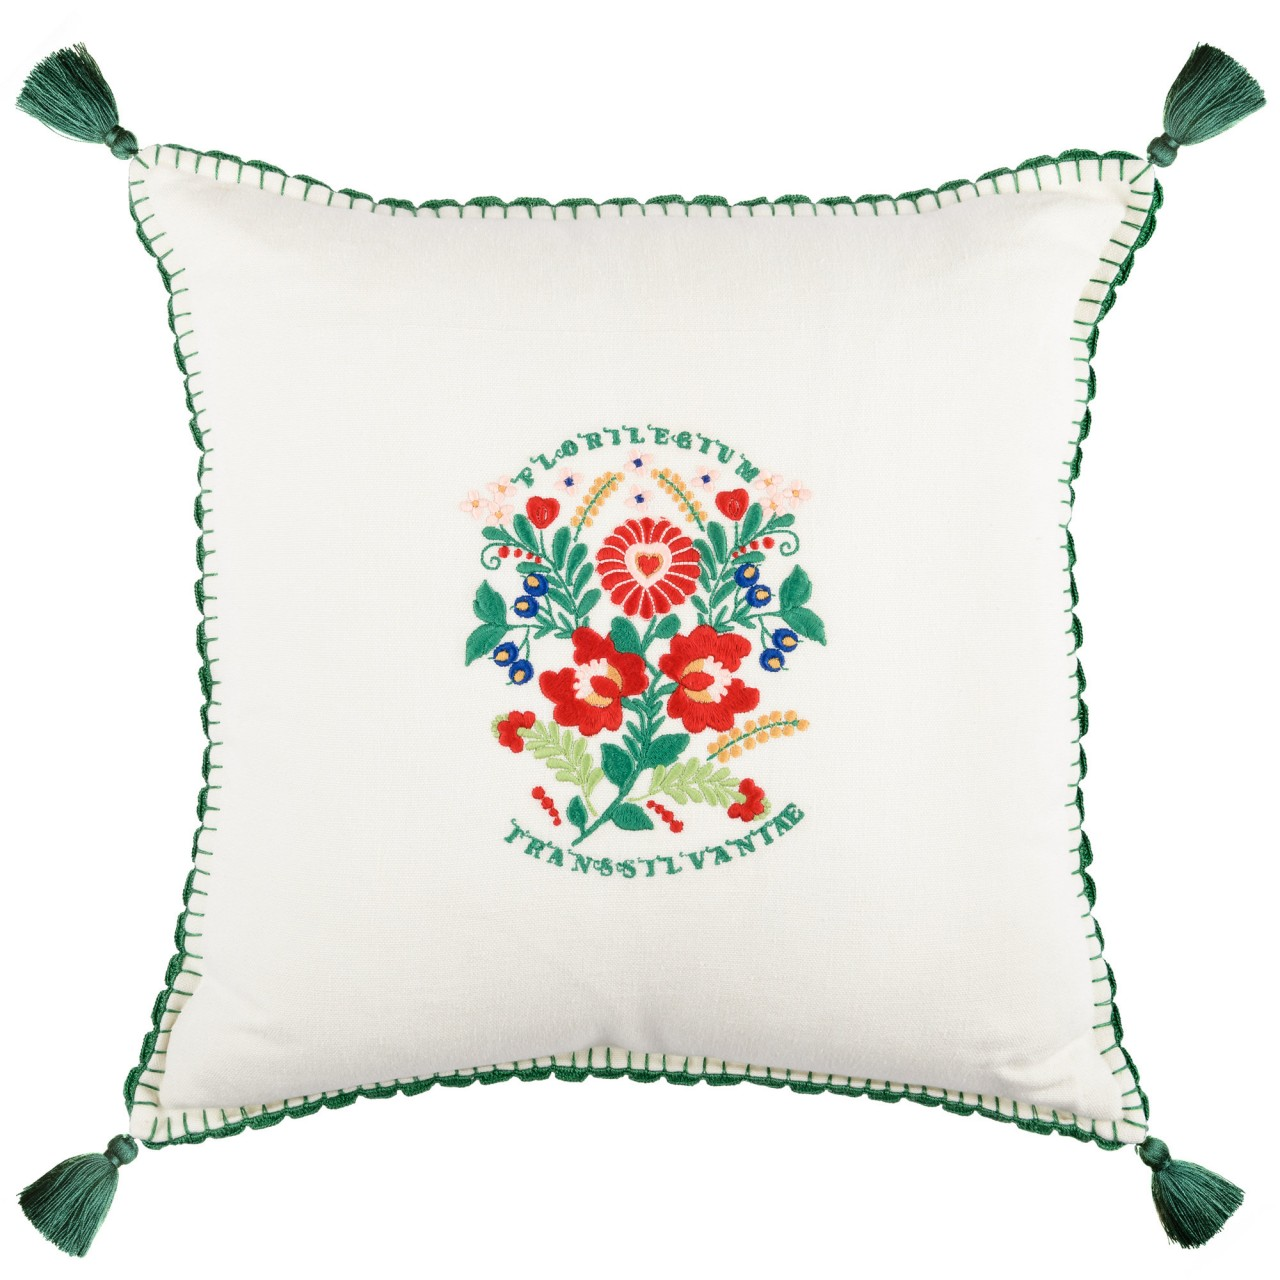 TRANSSILVANIAE FLORILEGIUM Linen Embroidered Cushion